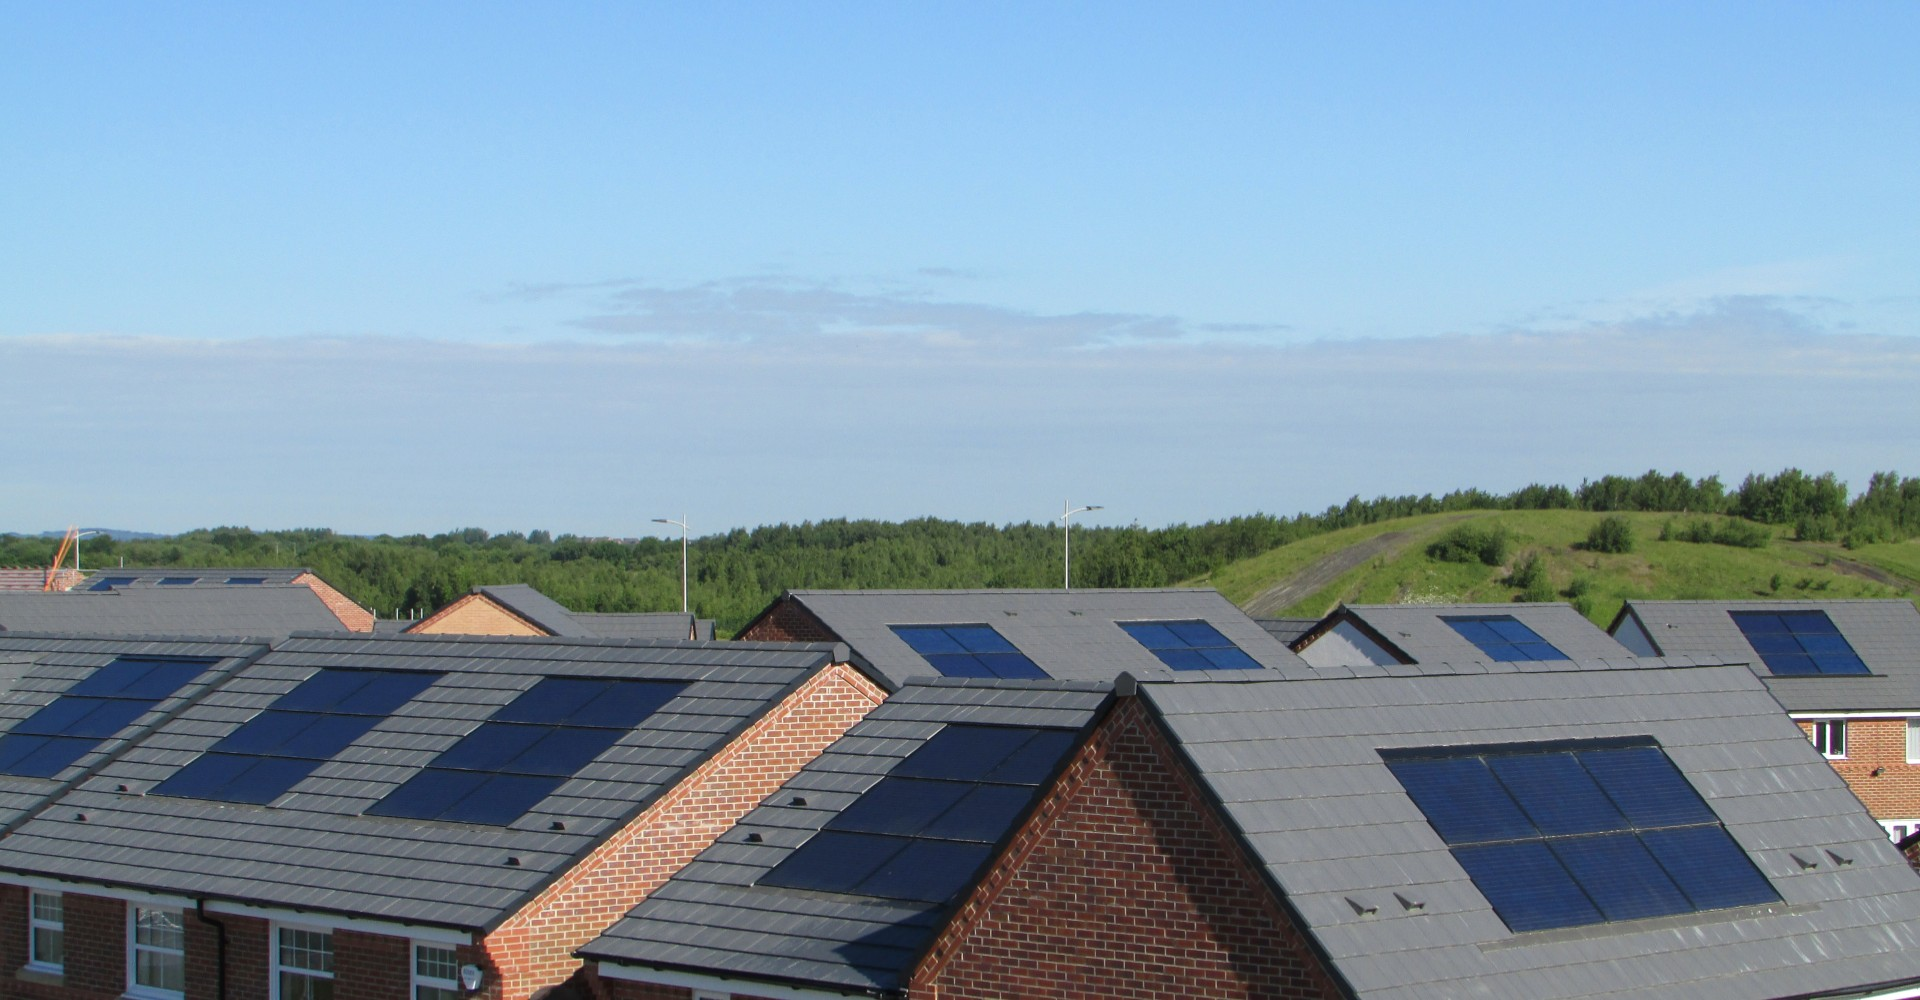 Avonside-Renewables-Solar-PV-Taylor-WImpey-Pennington-Wharf-2- (1)